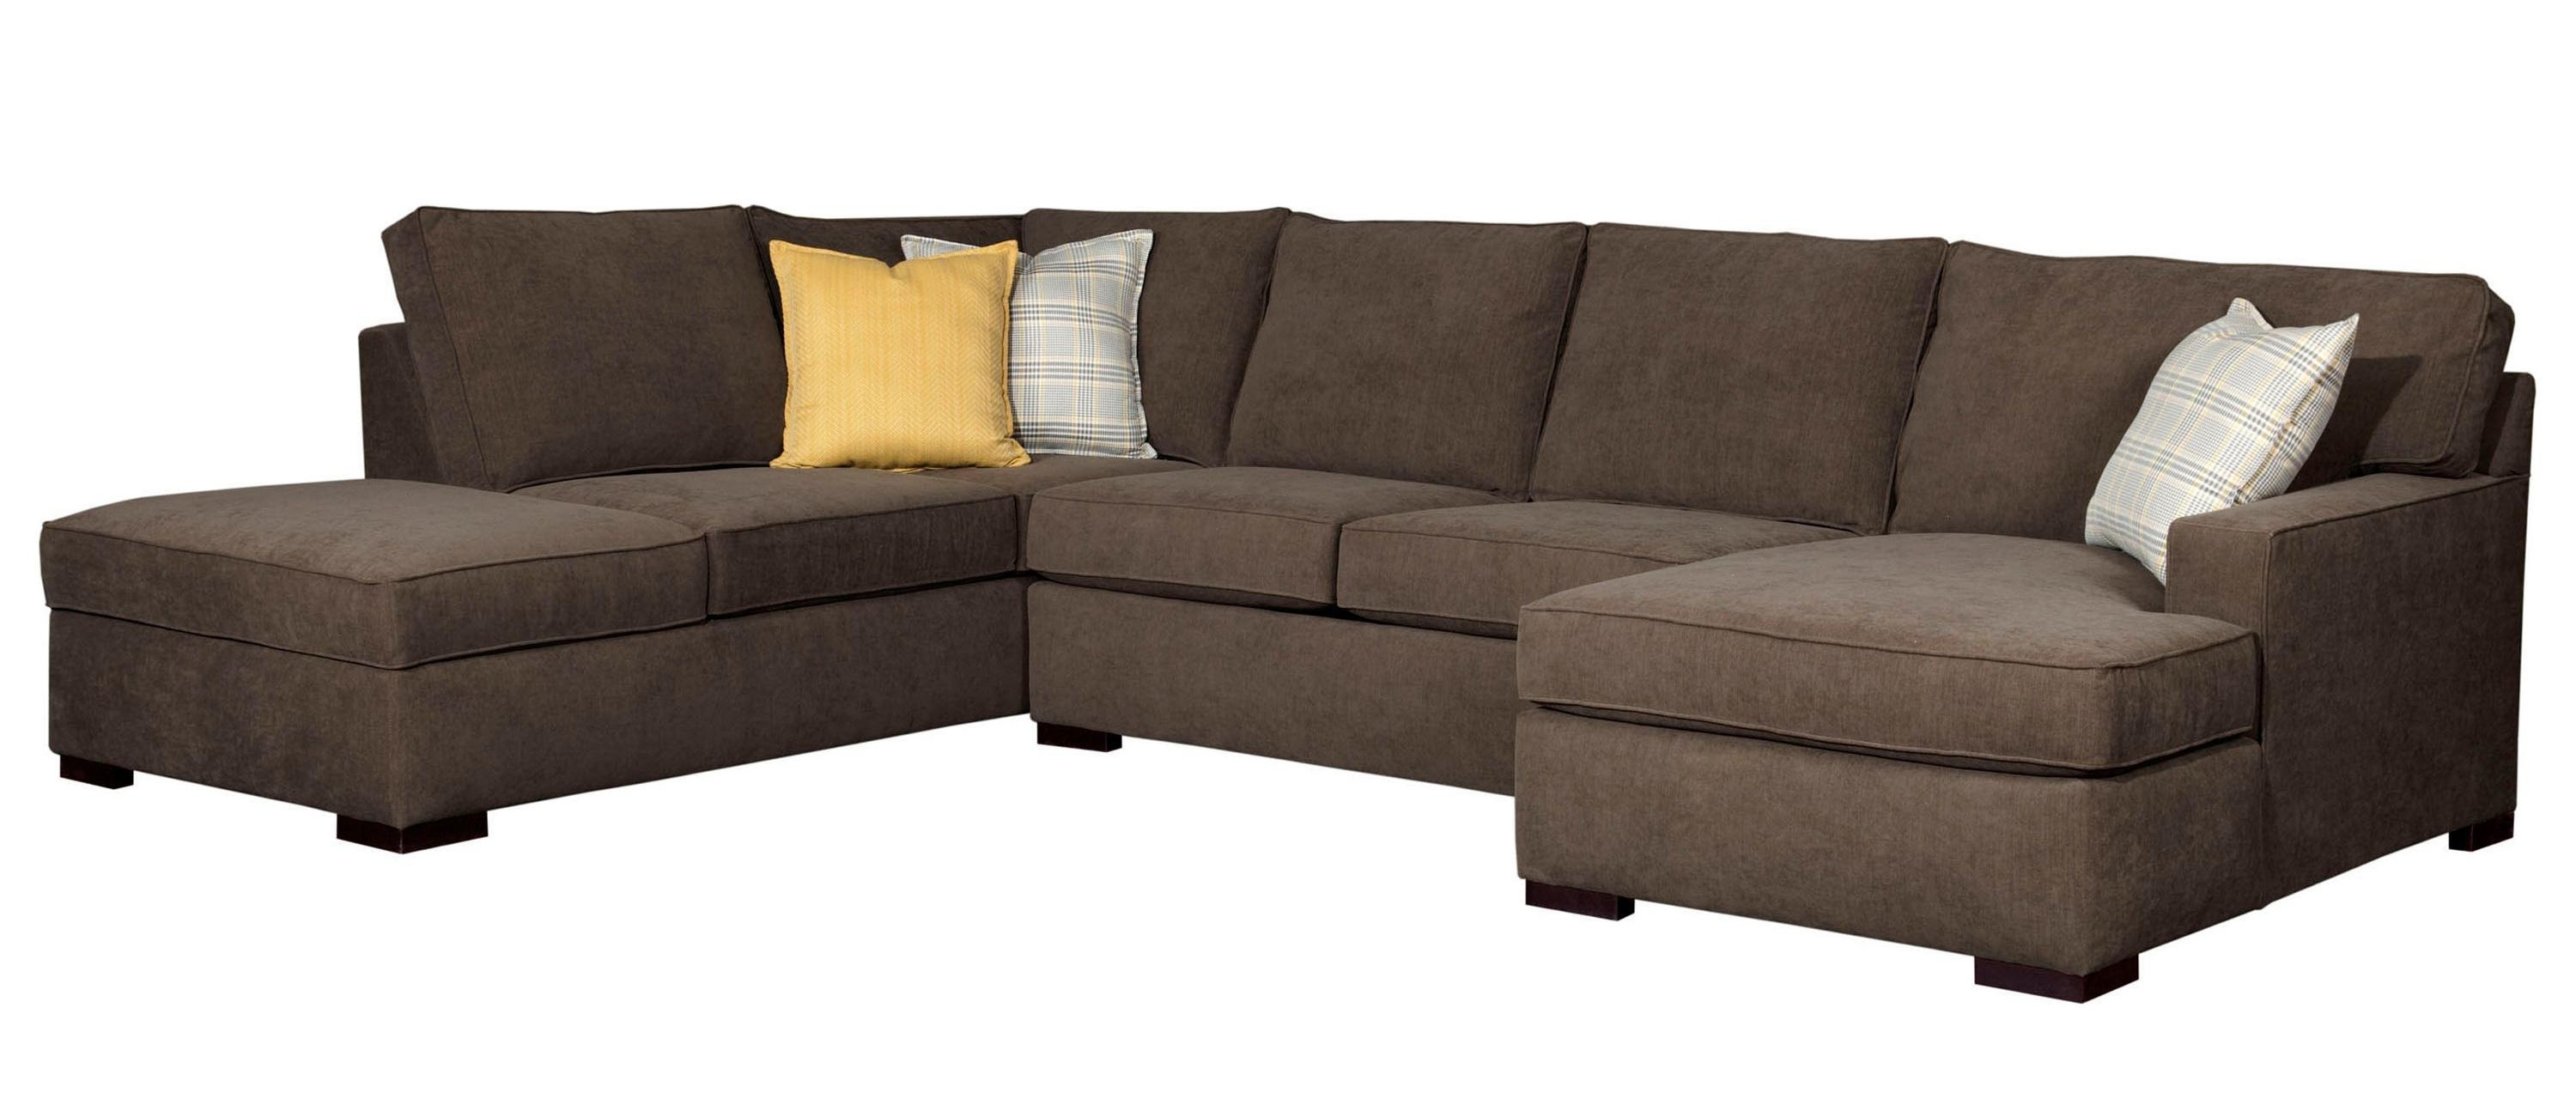 Furniture: Pick Your Lovely Broyhill Couch Design For Your Living Pertaining To Broyhill Sectional Sleeper Sofas (Image 14 of 20)